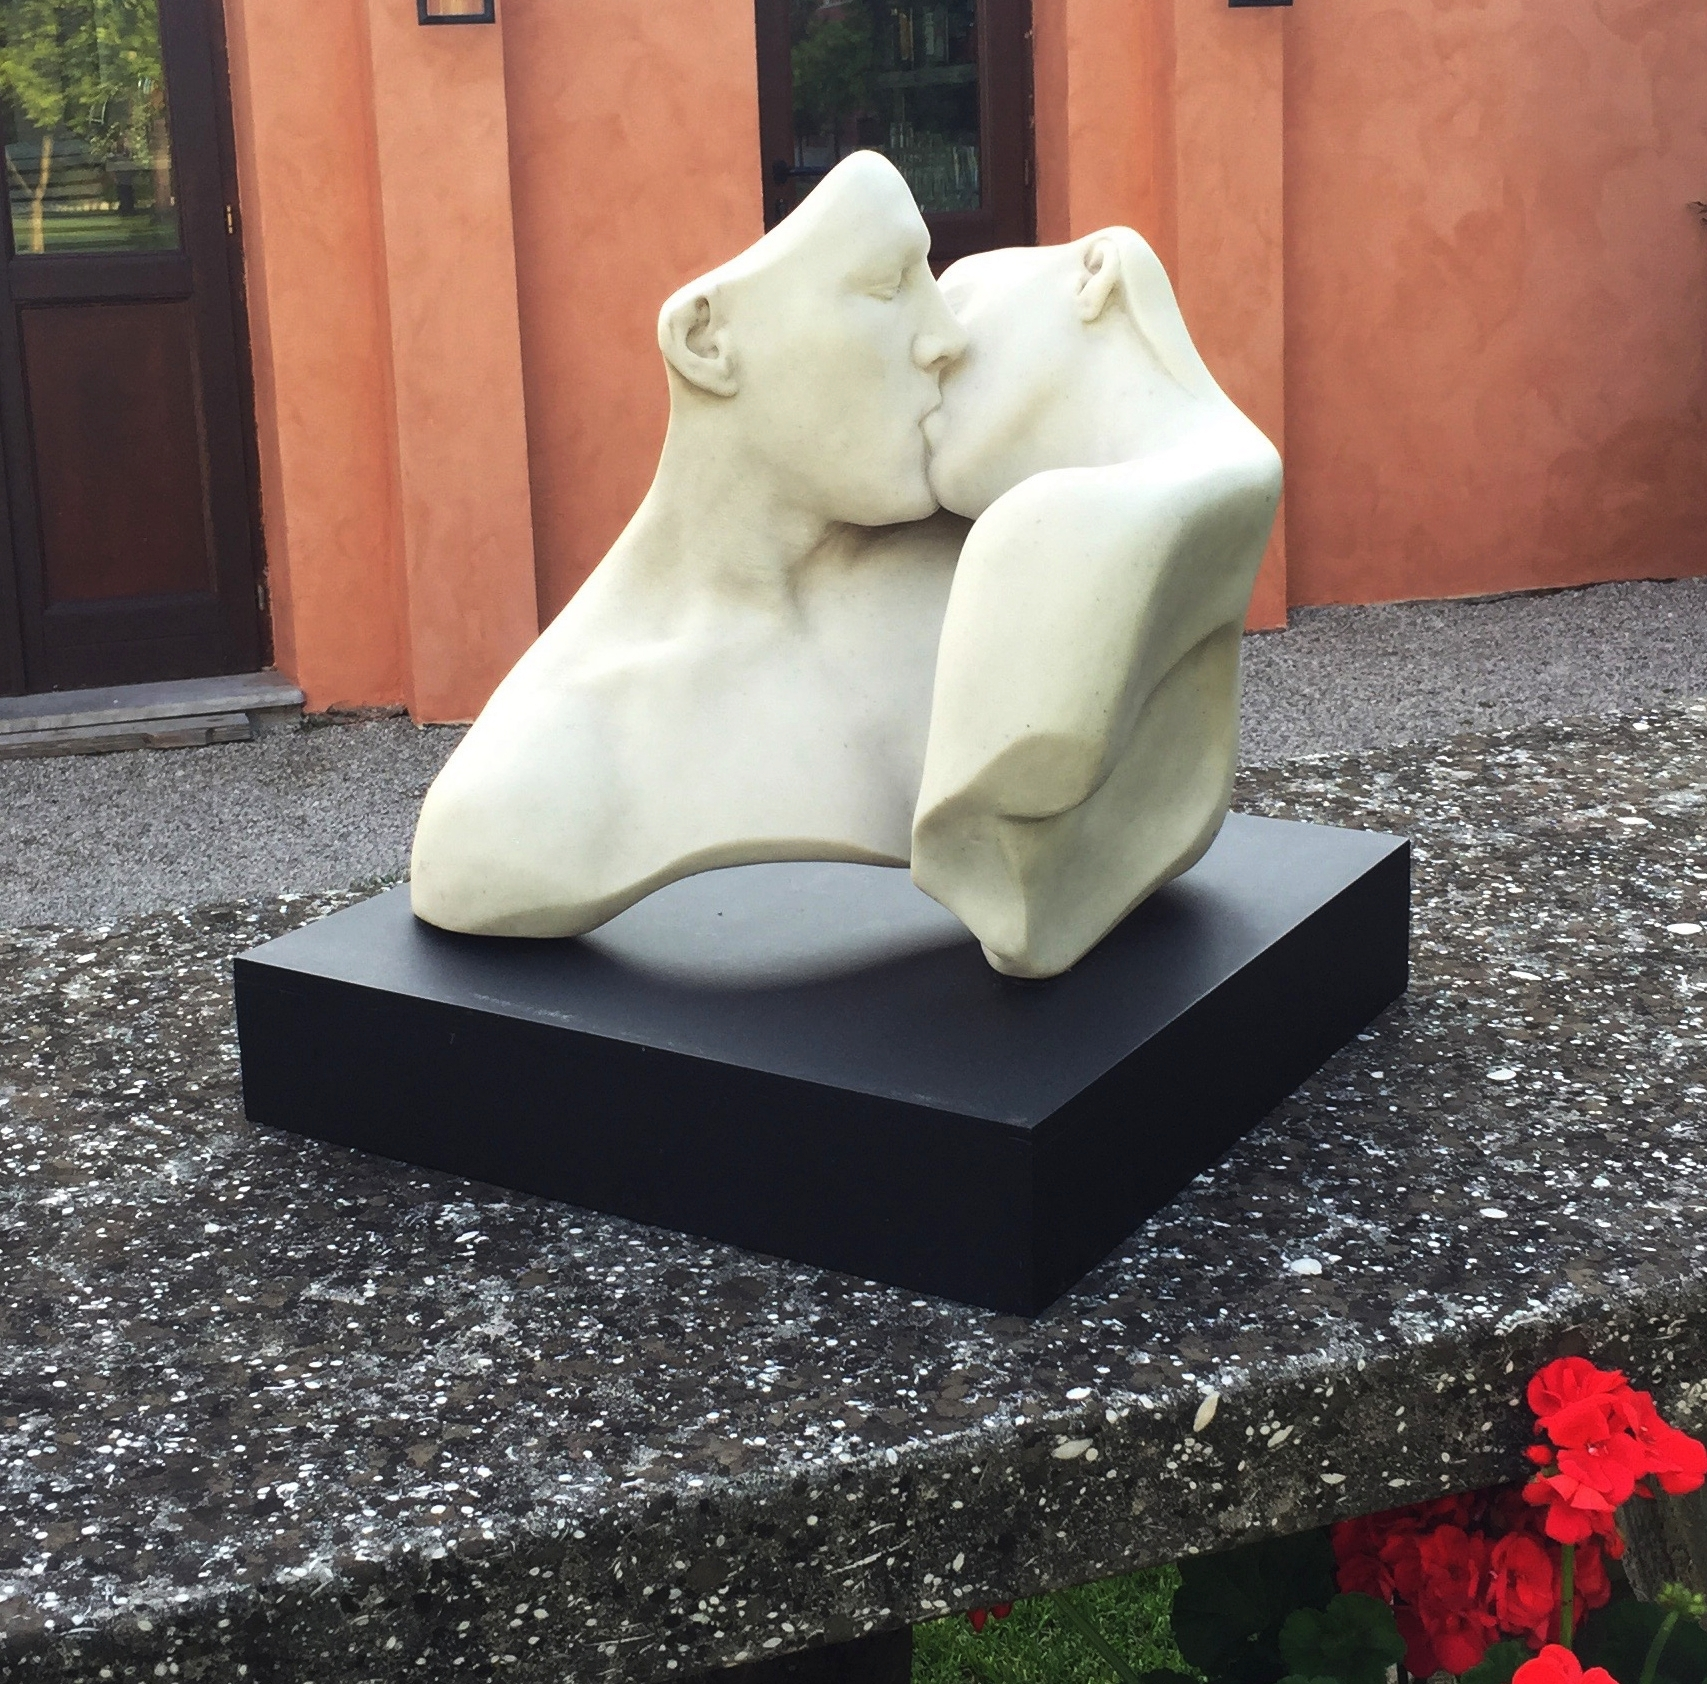 The Lovers, Marble, 17L x 16W x 15H (inches), Brano, Italy